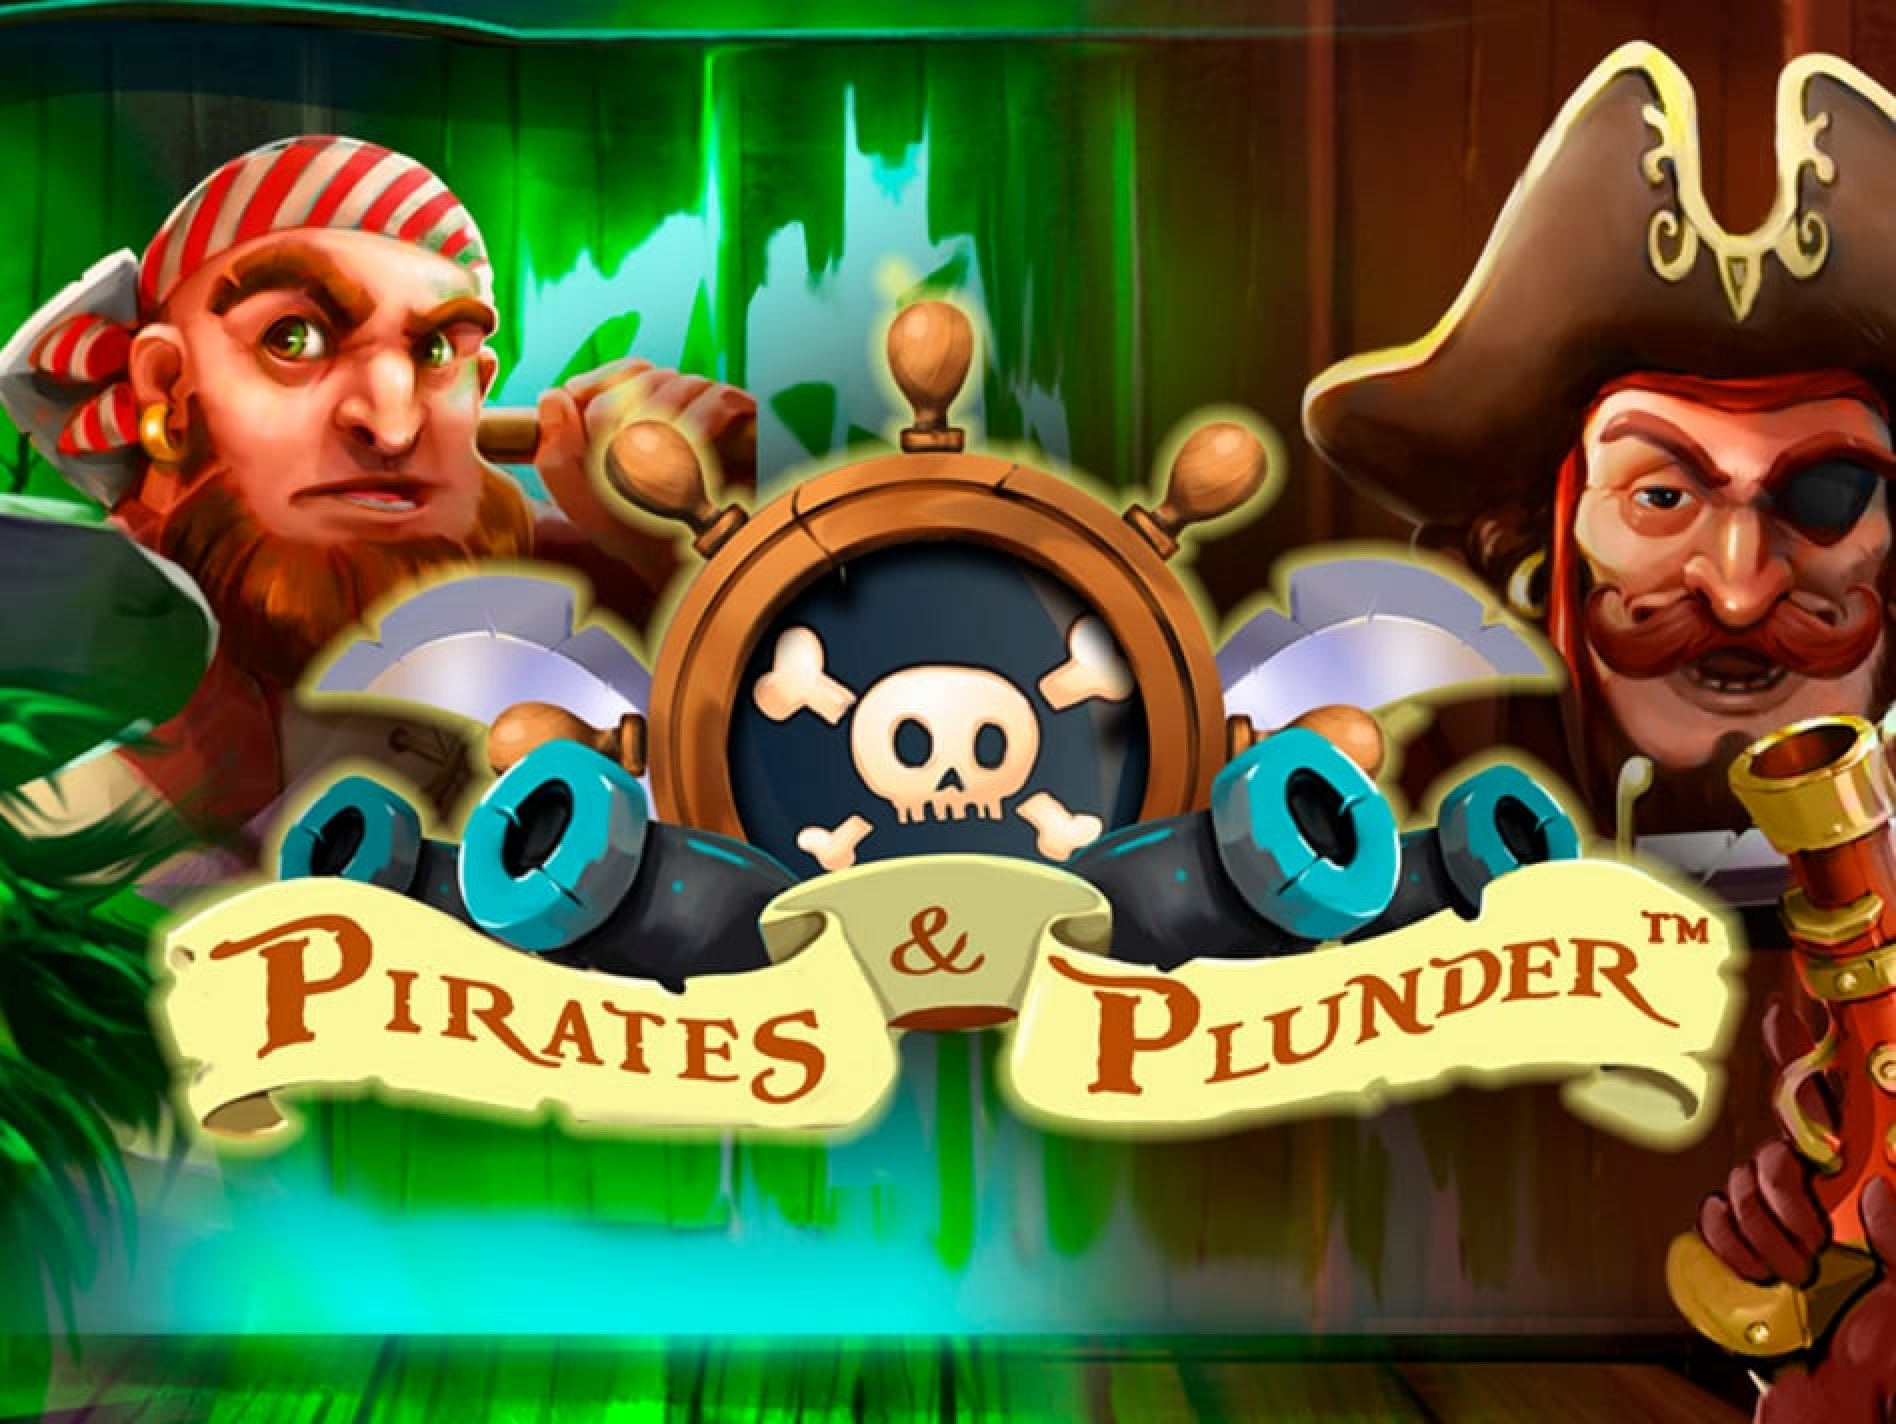 Se Pirates and Plunder Online Slot Demo Game, Mobilots